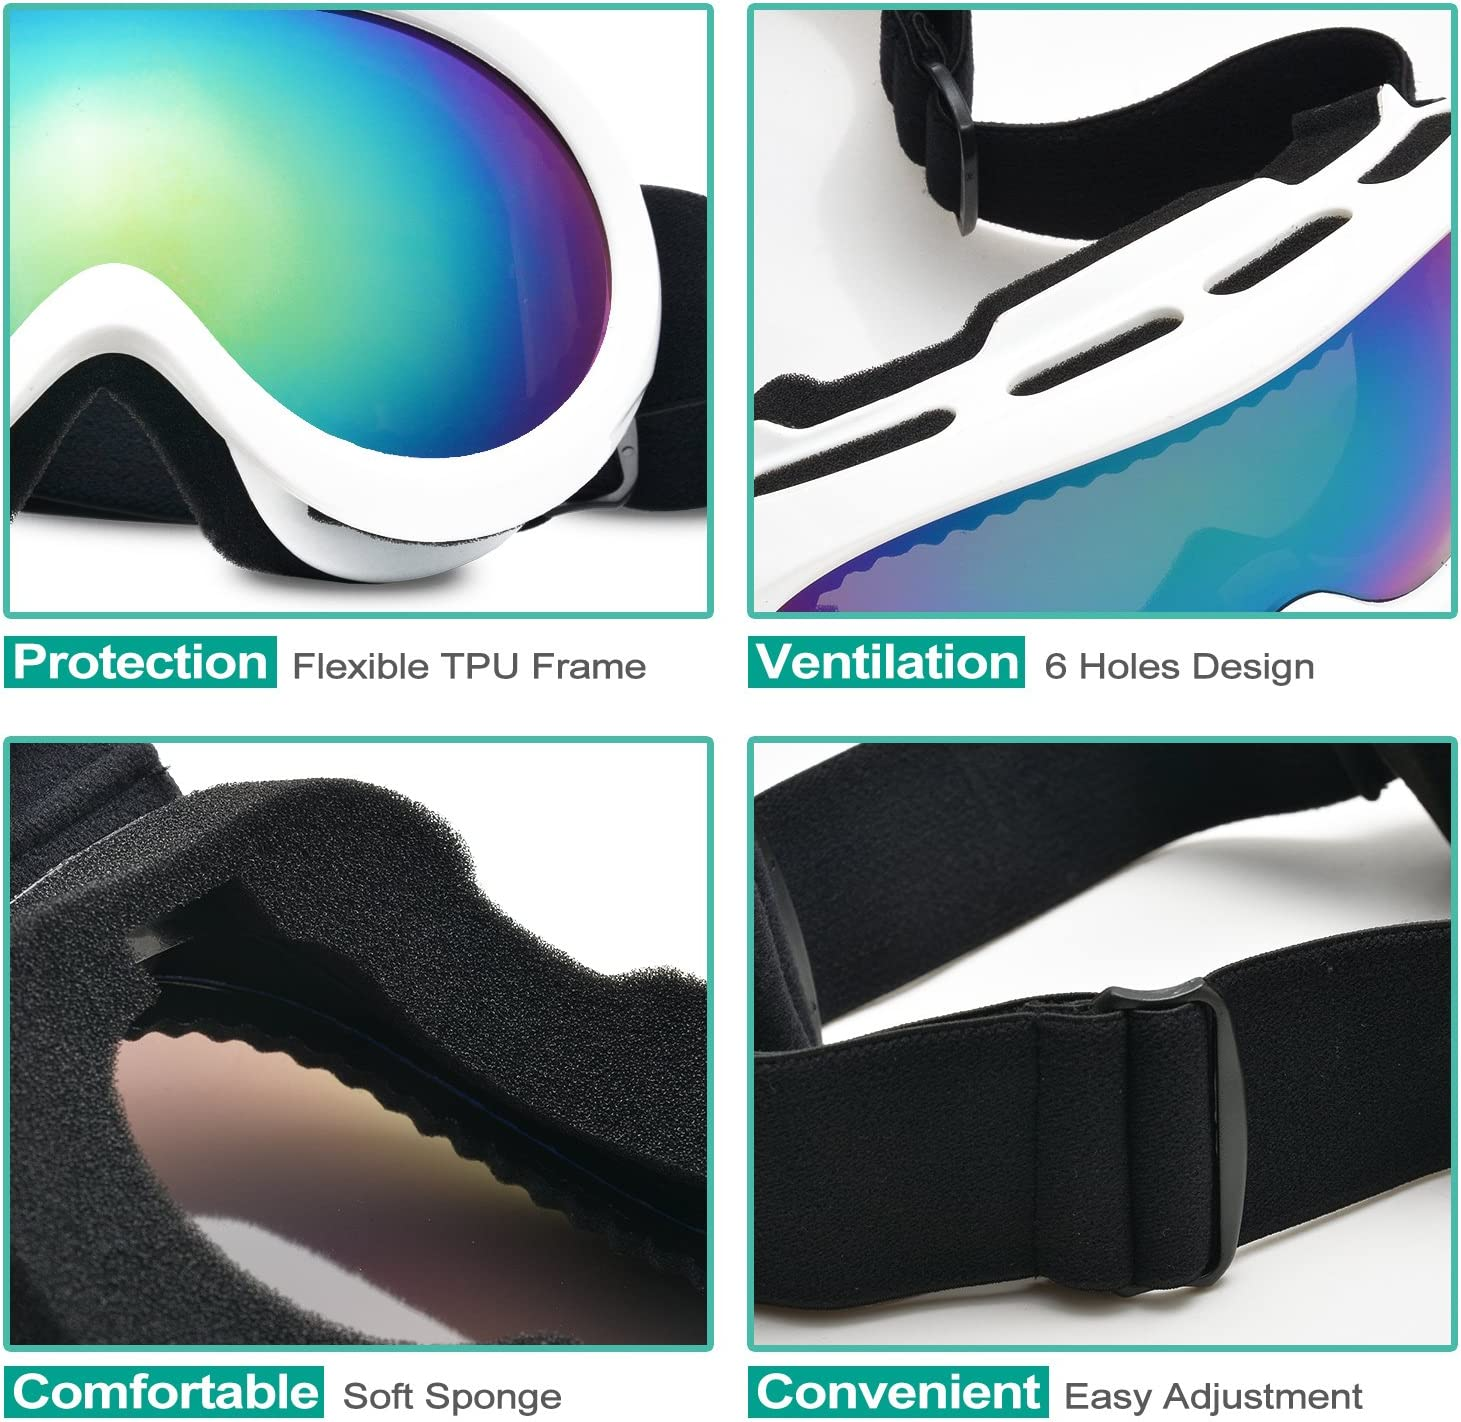 Odoland Snow Ski Goggles S2 Double Lens Anti-Fog Windproof UV400 Eyewear for Youth Skiing Age 8-16 Motorcycle Cycling and Snowmobile Winter Outdoor Sports Protective Glasses Snowboarding